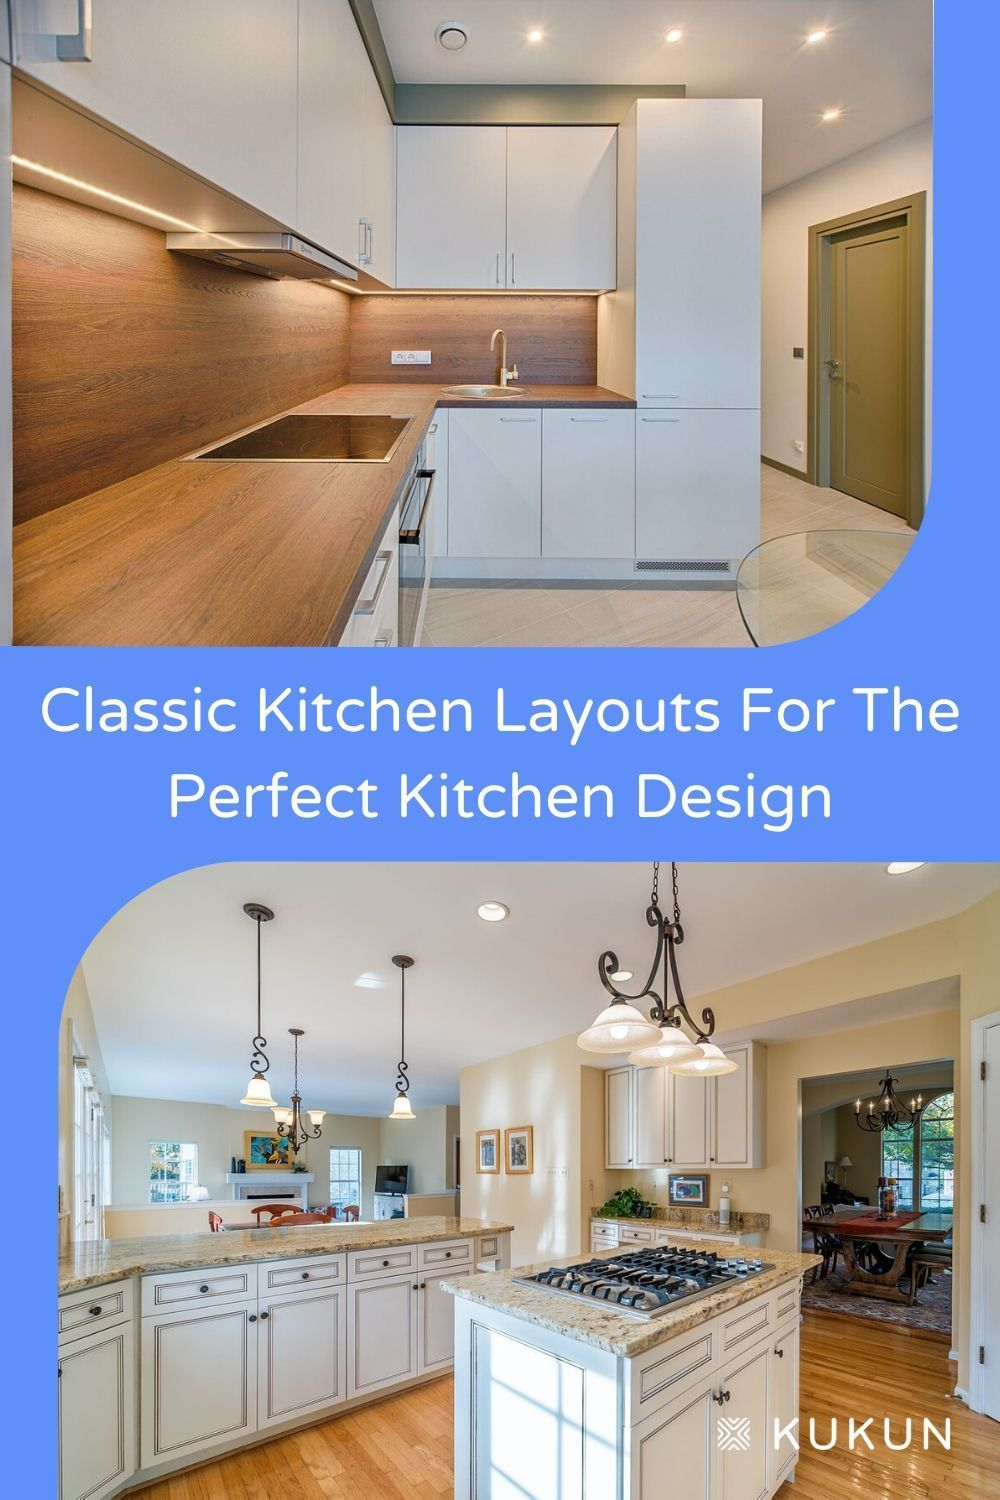 Classic Kitchen Layouts For Kitchen Design In 2020 Kitchen Layout Classic Kitchens Kitchen Designs Layout